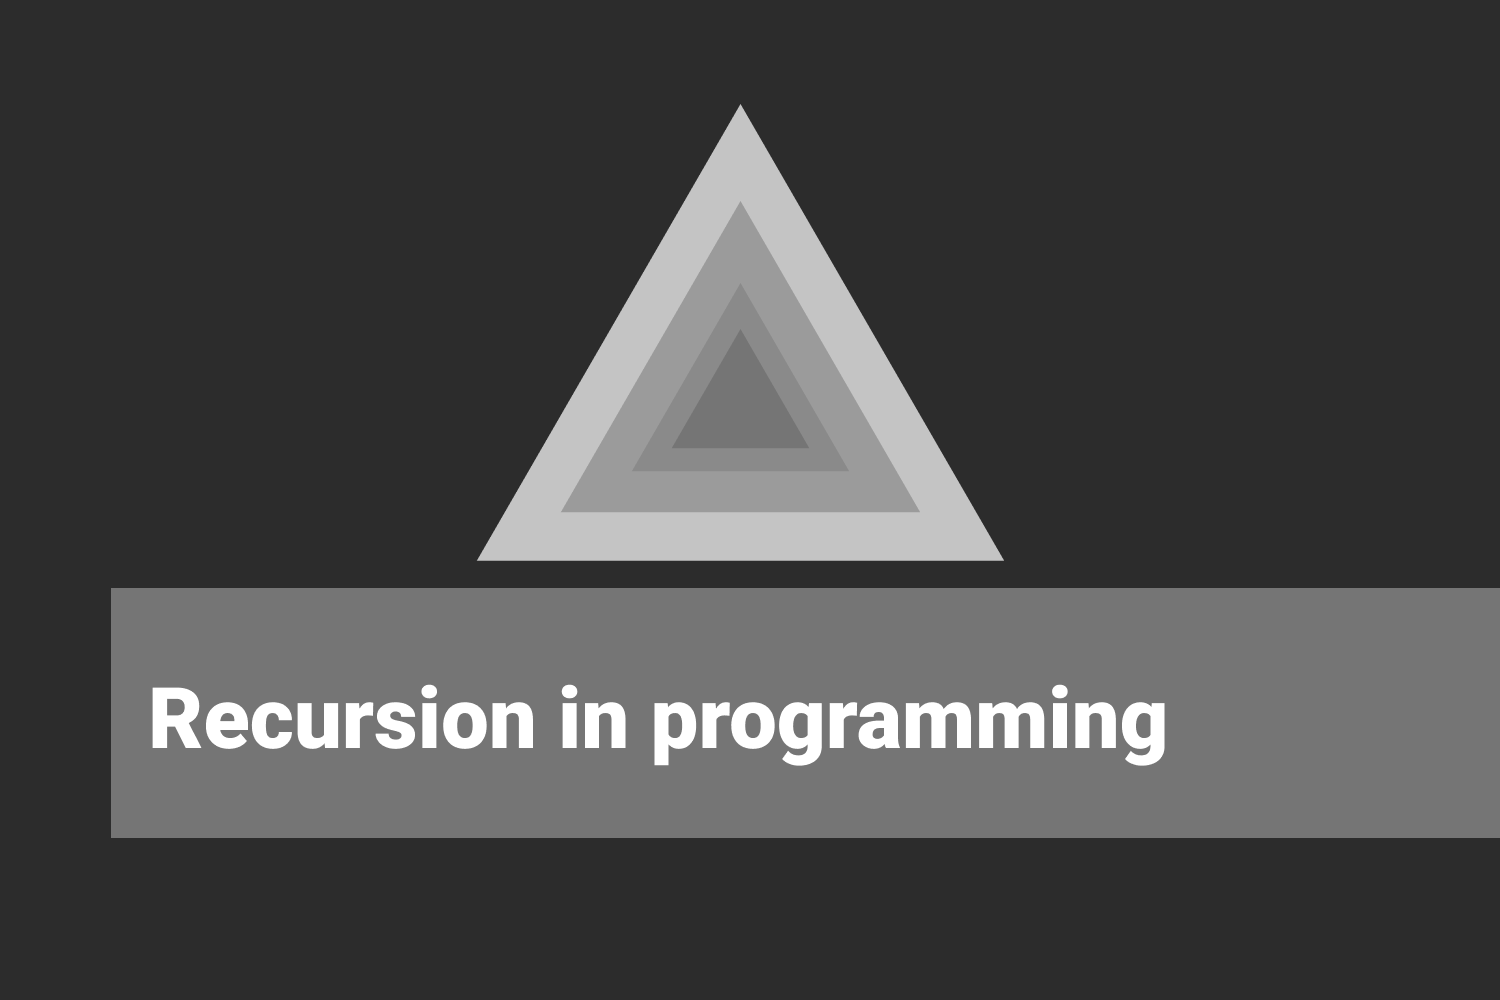 What is recursion in programming?